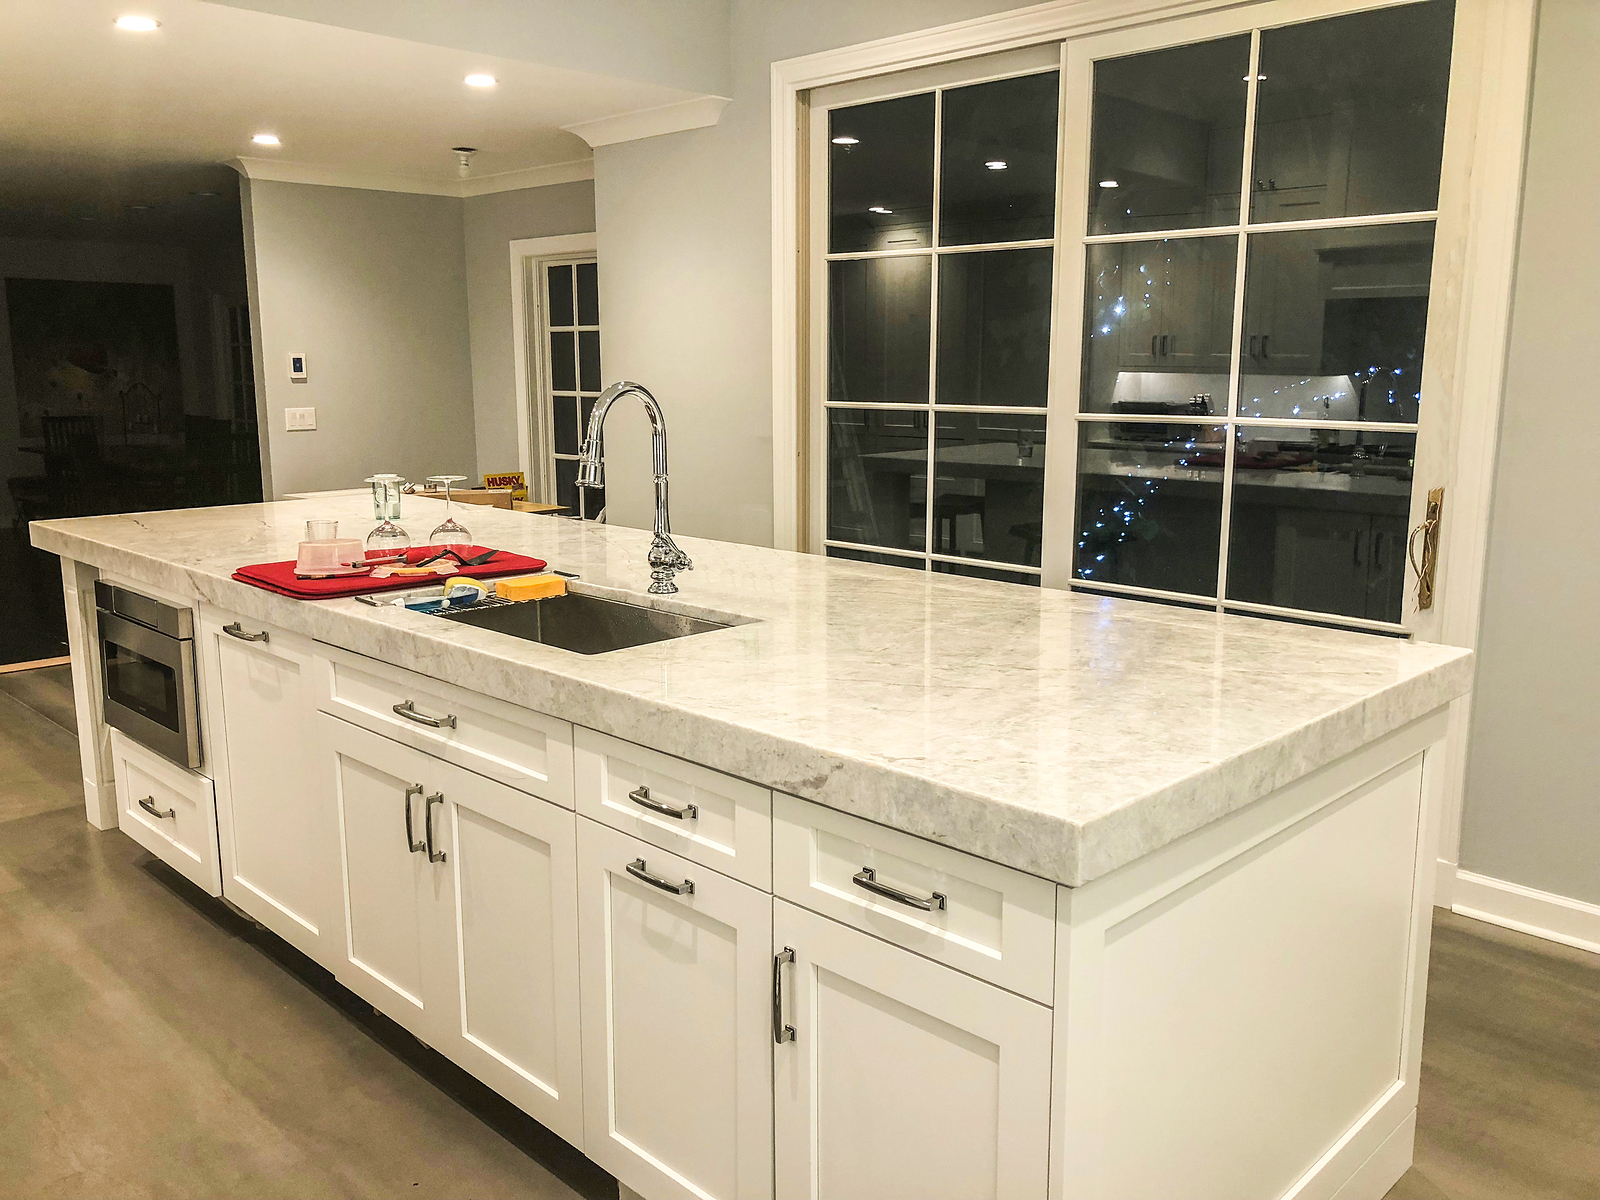 The Small Kitchen Island Size Guide Eagle Construction Remodeling